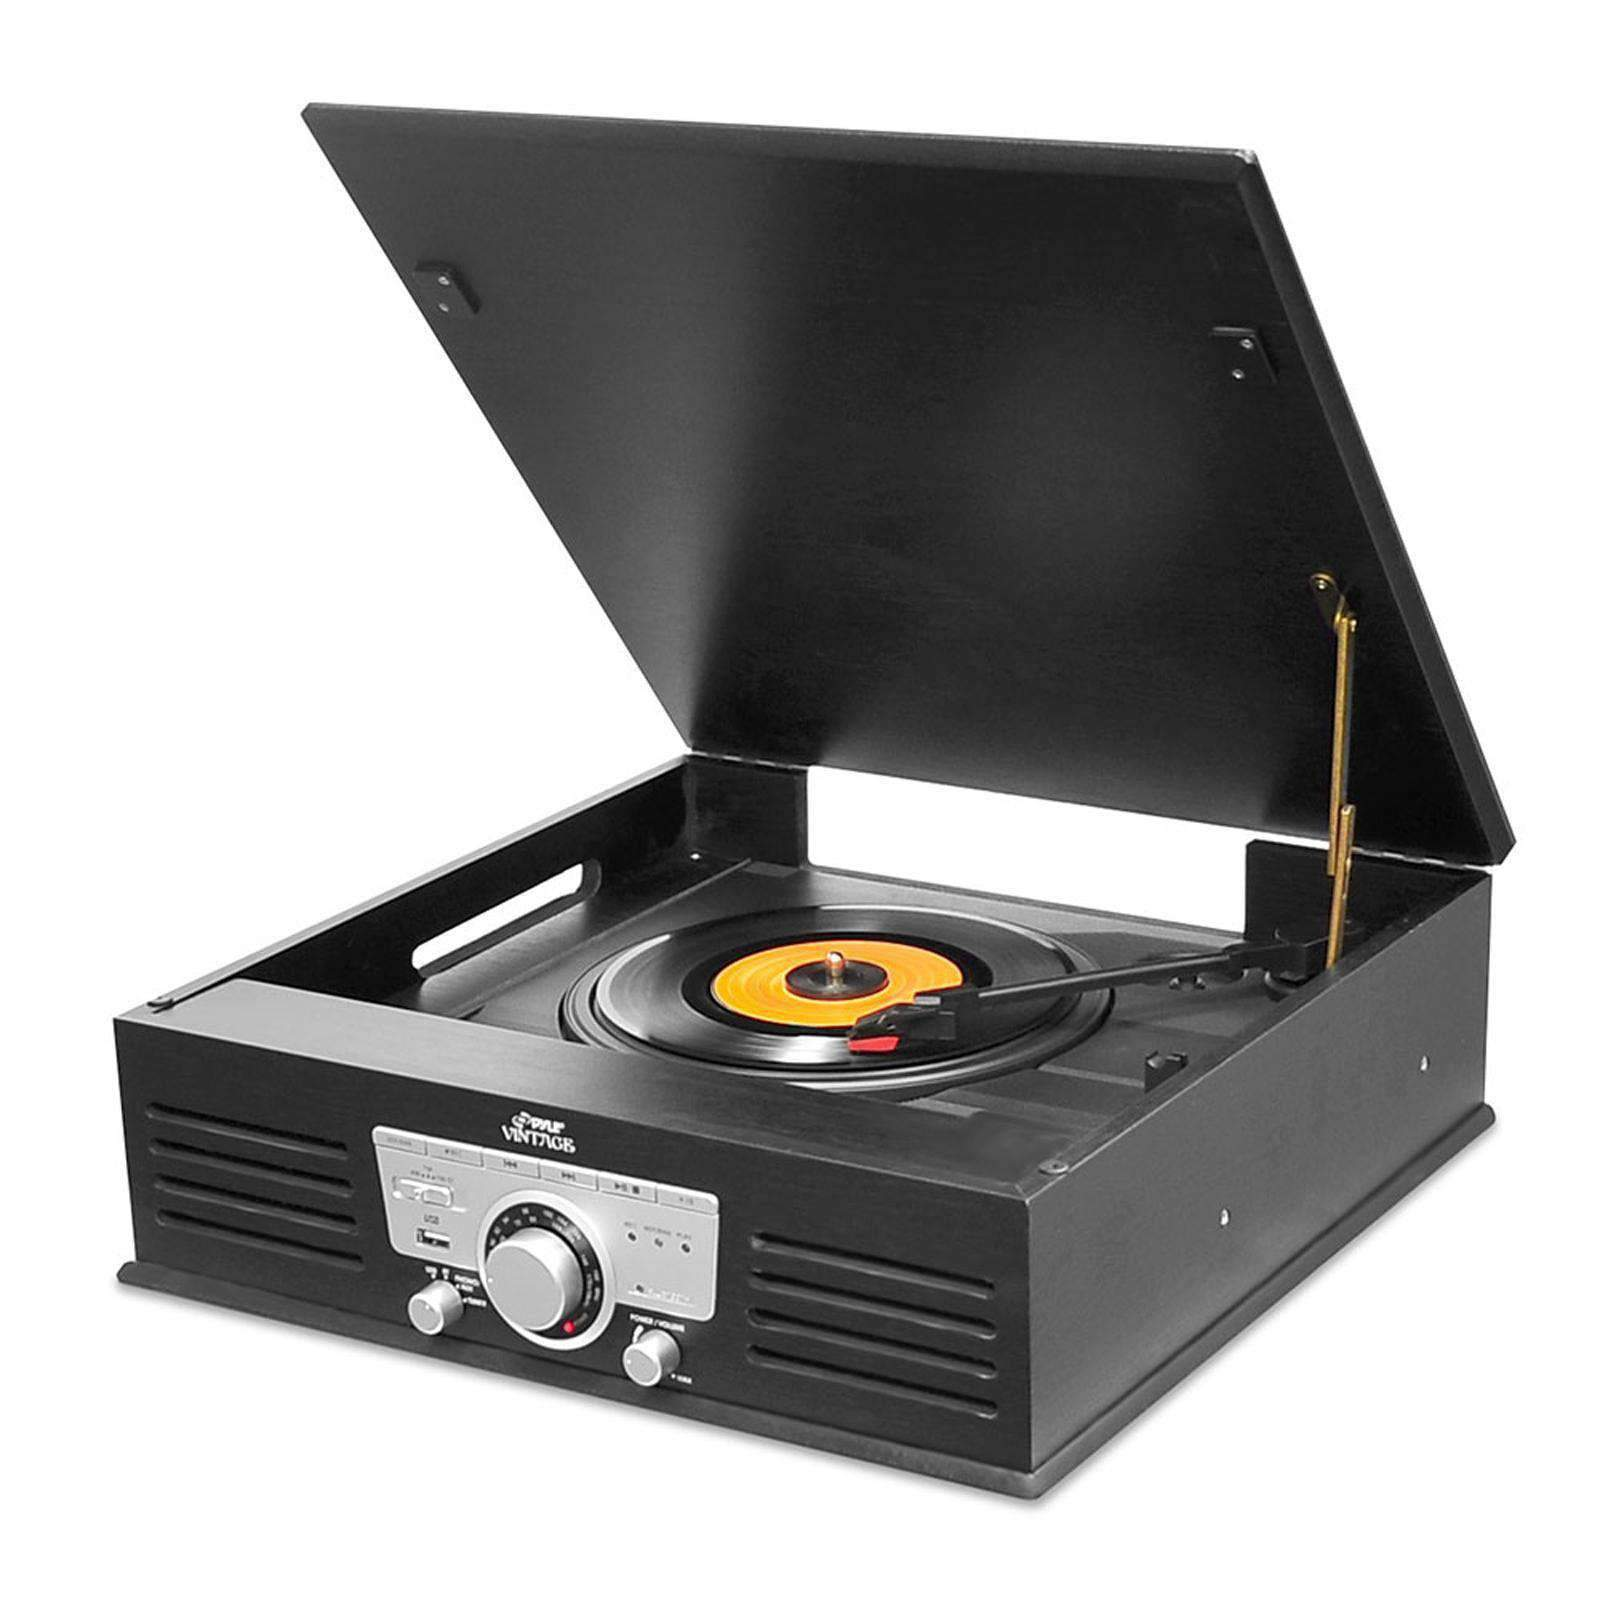 Pyle Nostalgia Systems Pyle Bluetooth Classic Style Record Player Turntable with Vinyl to MP3 Recording, USB-SD Card Readers and AM-FM Radio